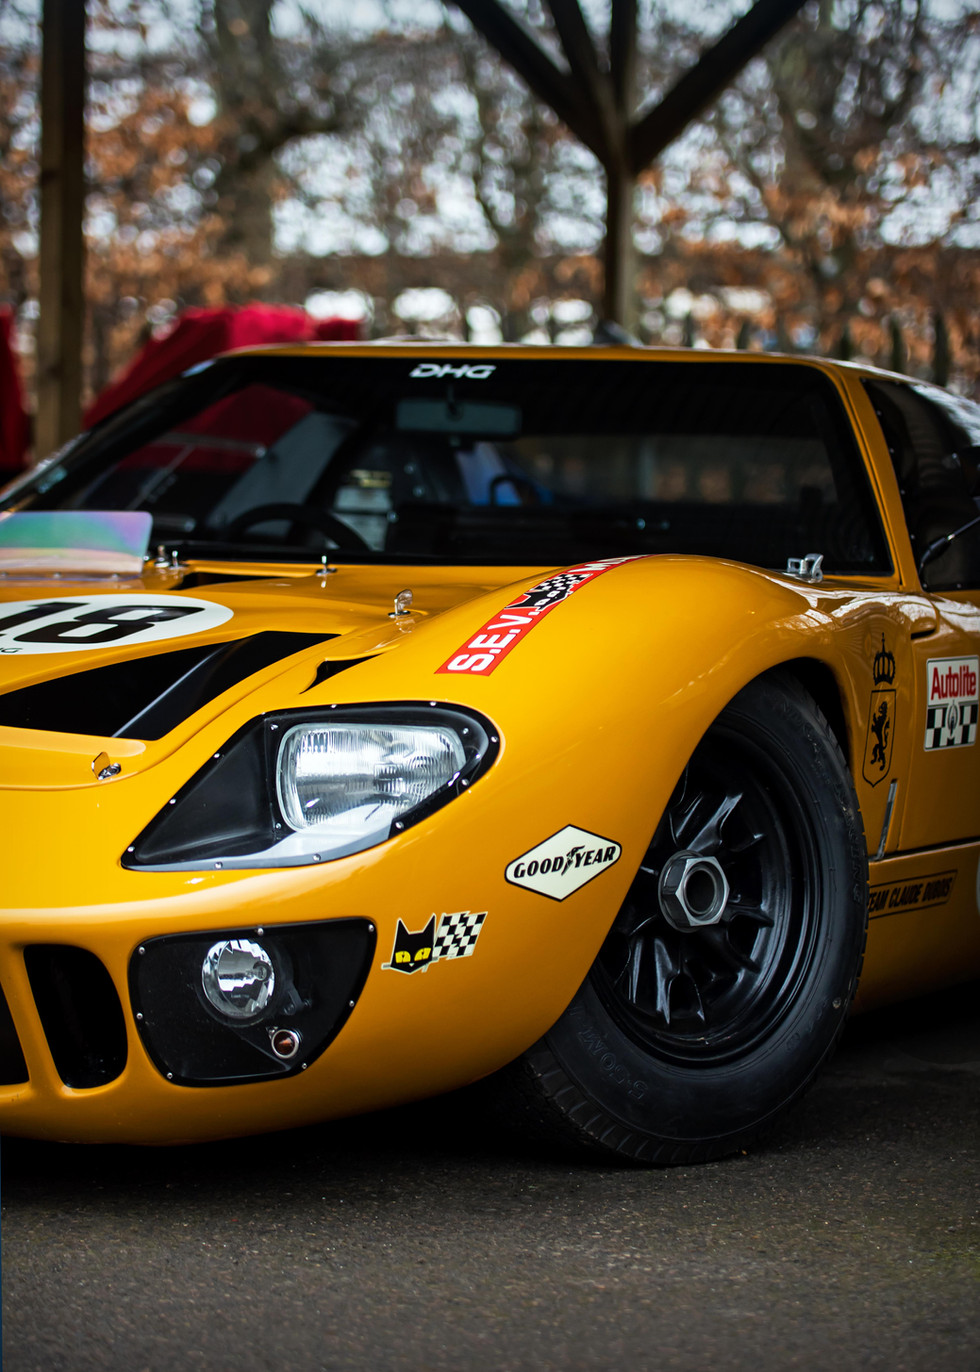 David Hart's 1968 Ford GT40 at the Goodwood 76MM